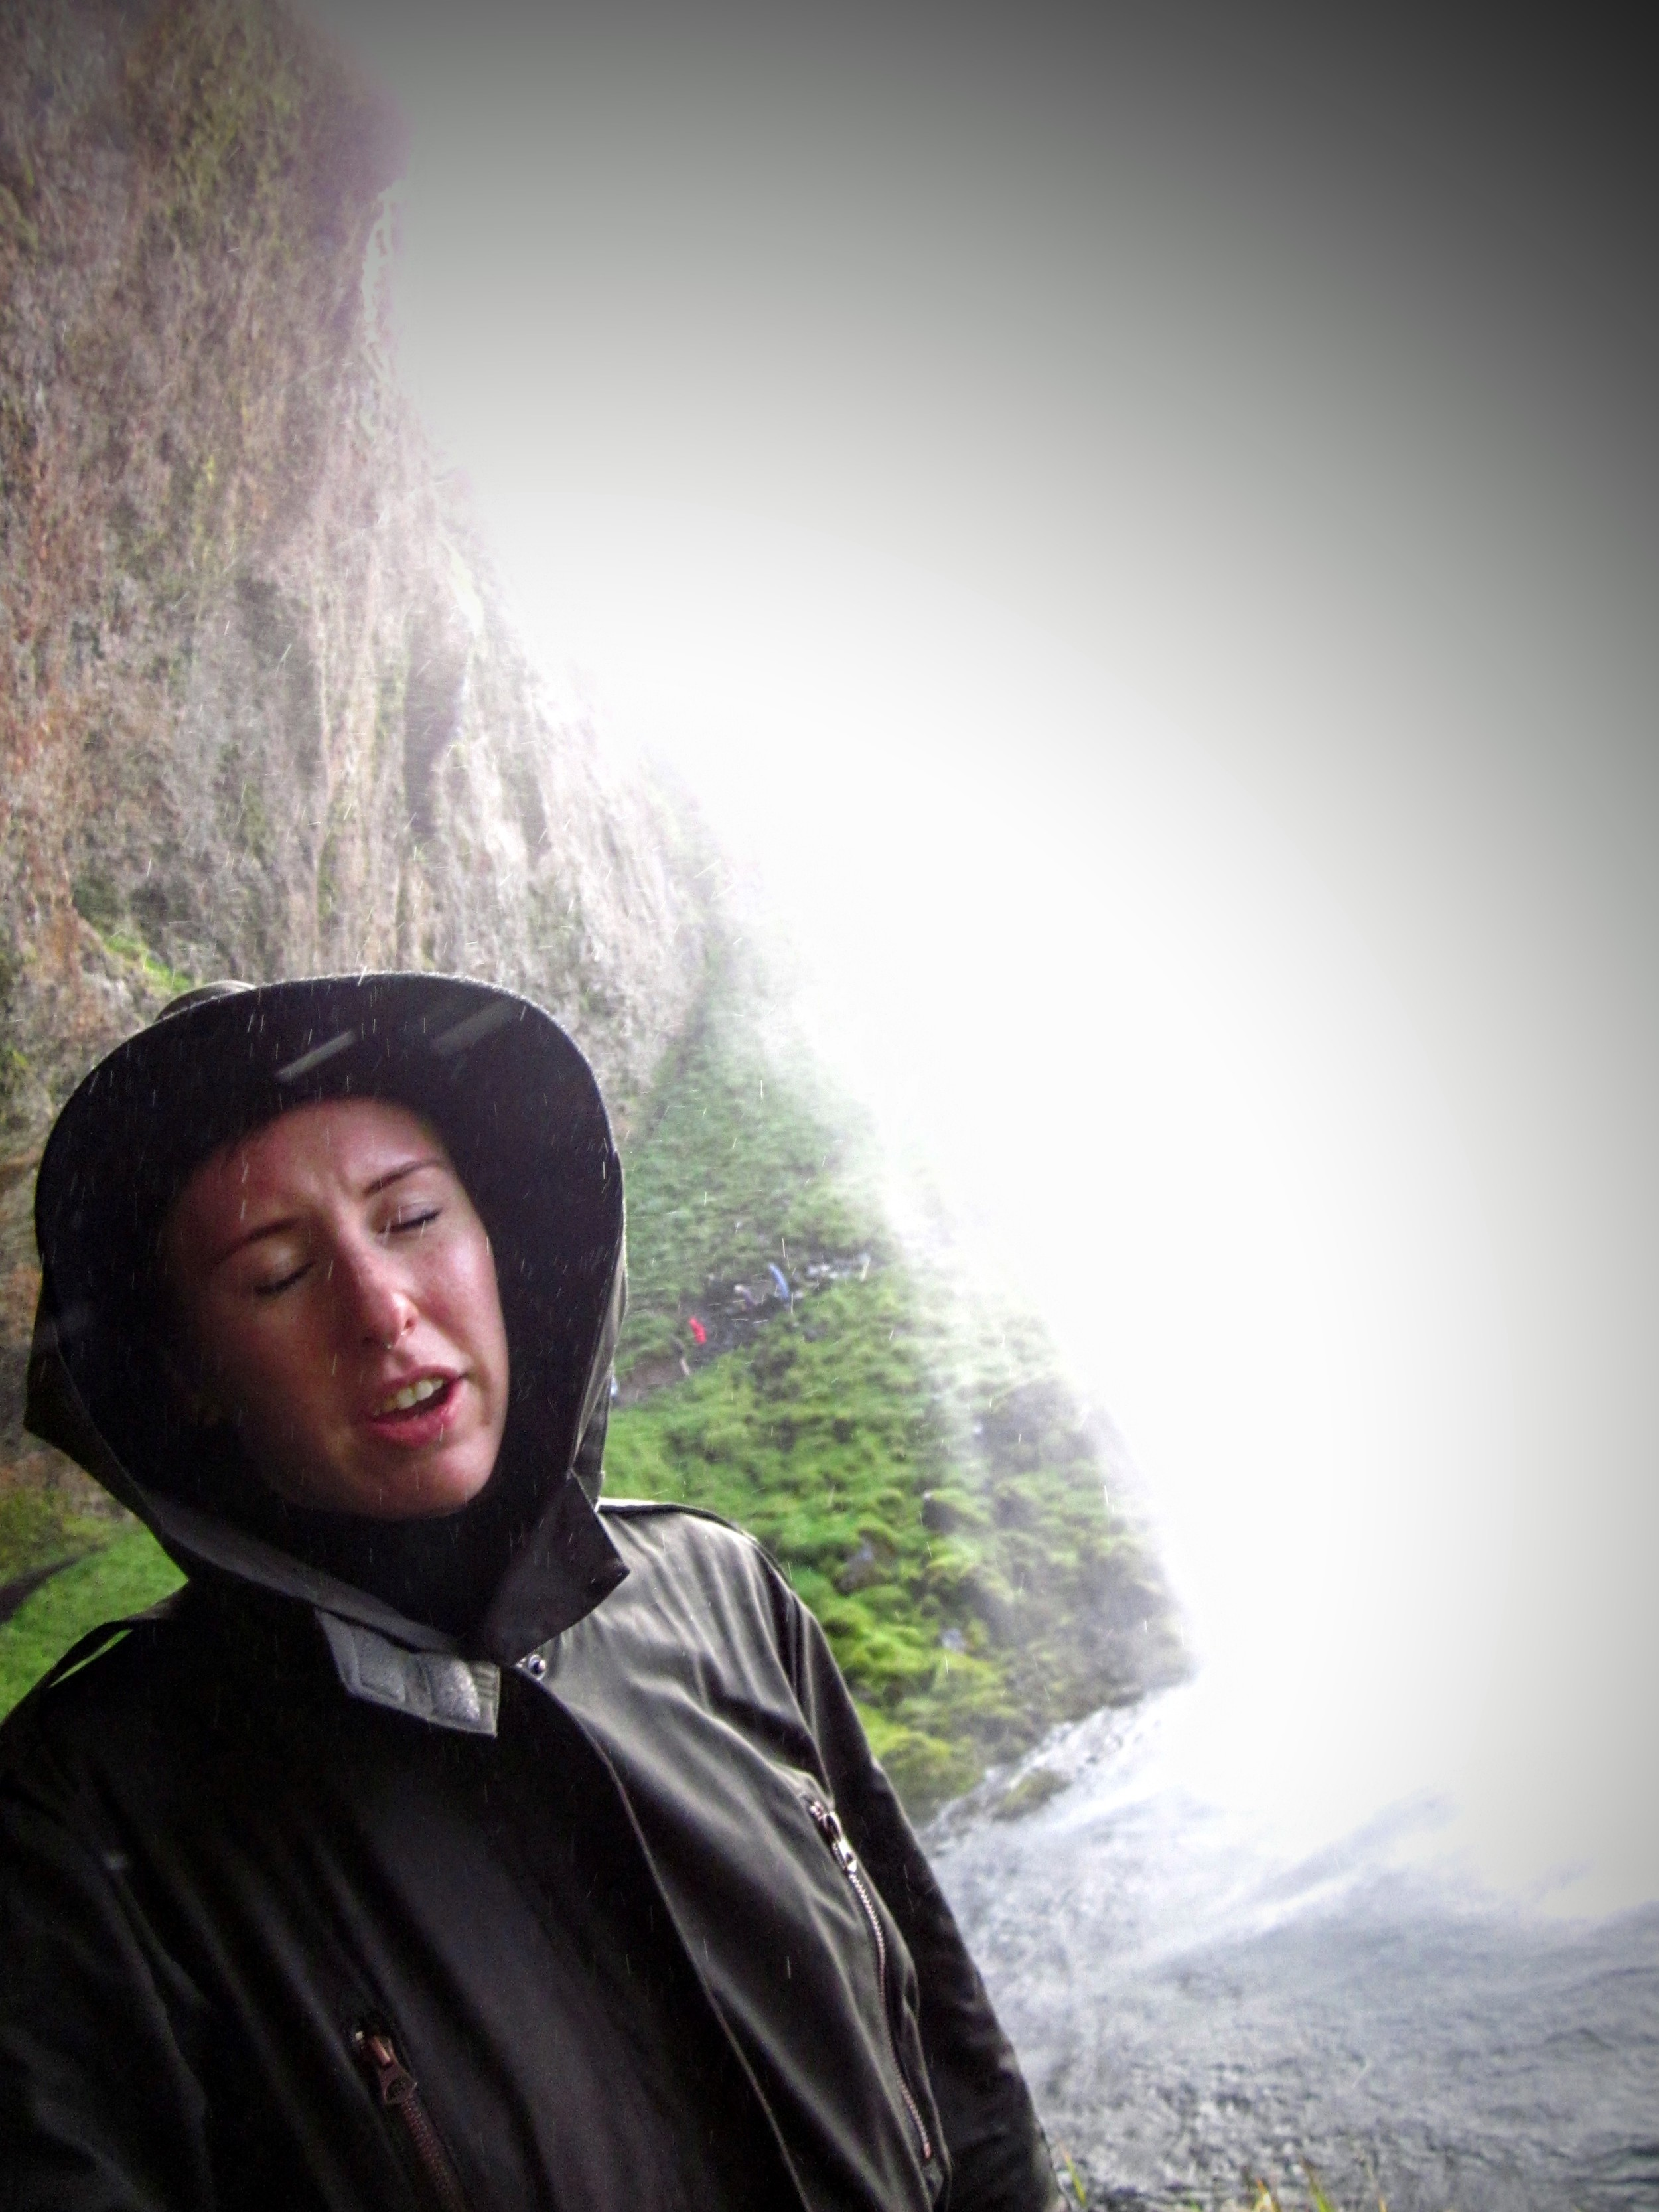 The waterfalls of iceland are one of the natural wonders of the world. They're beautiful. Let's just assume I was so overwhelmed by the majesty that I couldn't control the muscles of my face.